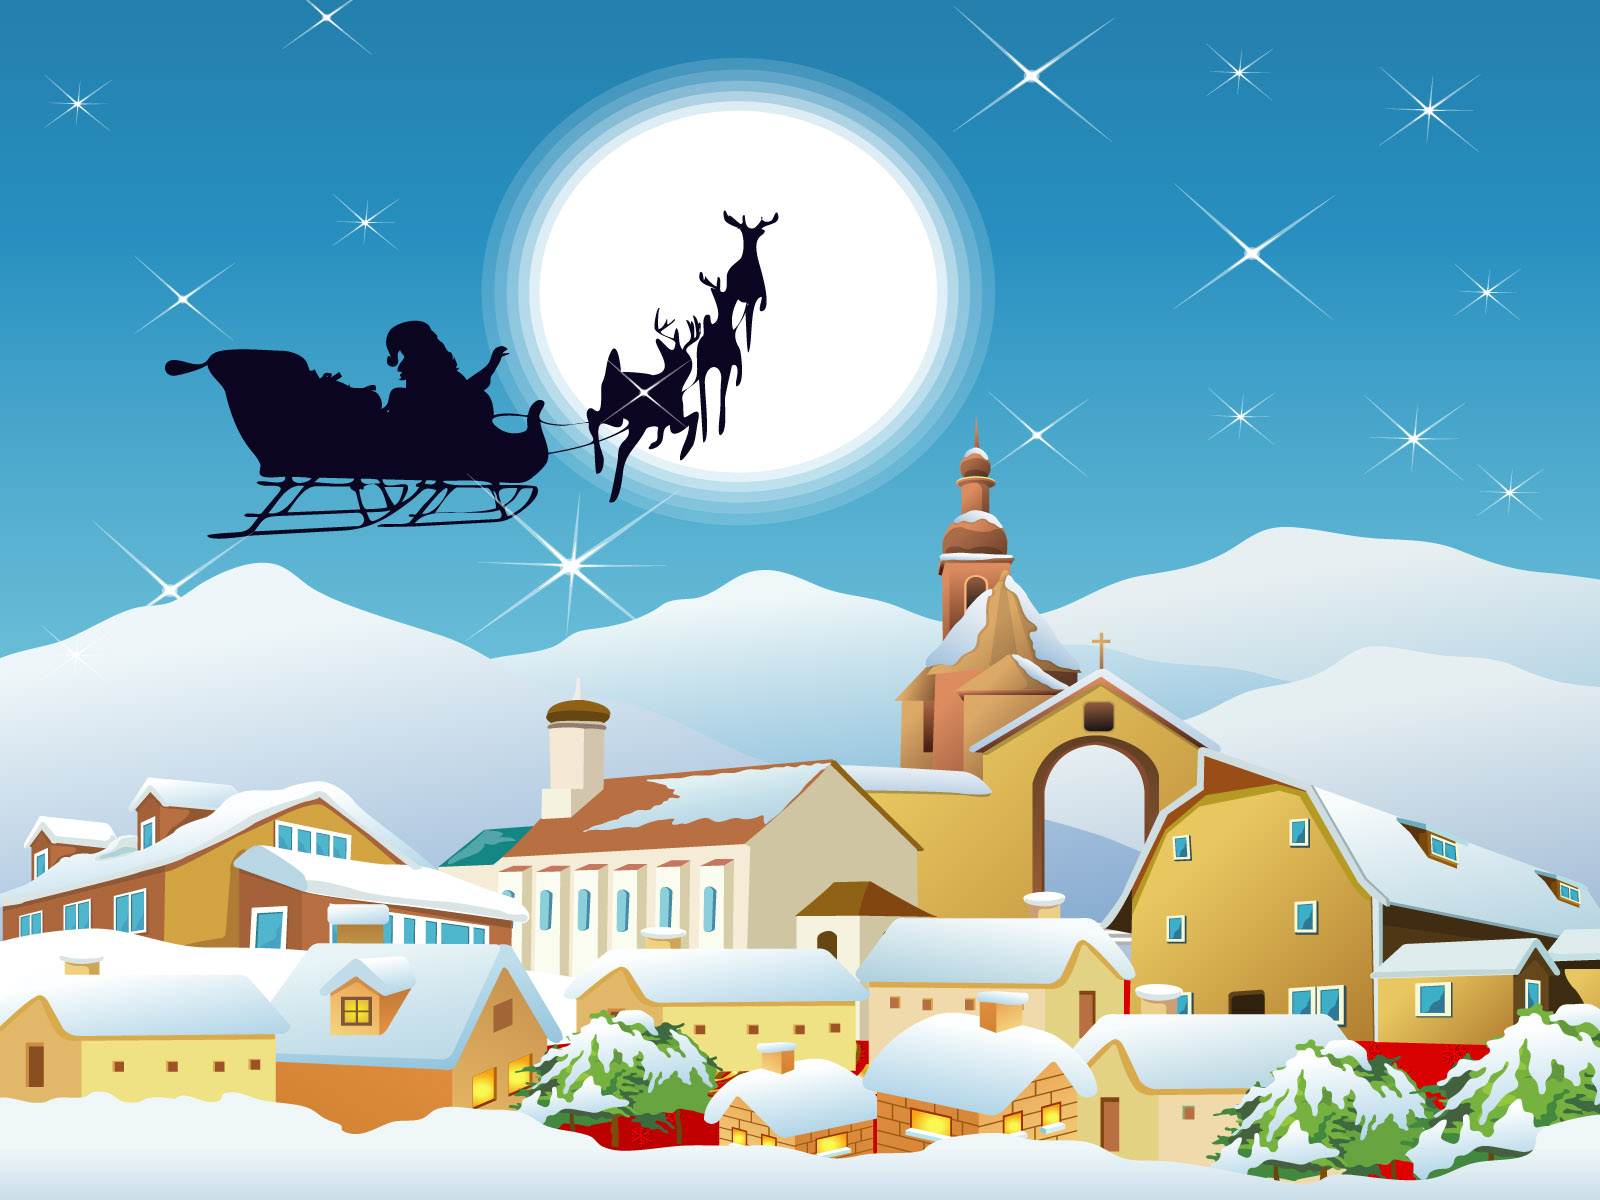 Animated Gifs Christmas wallpapers for kids funny collection download 1600x1200